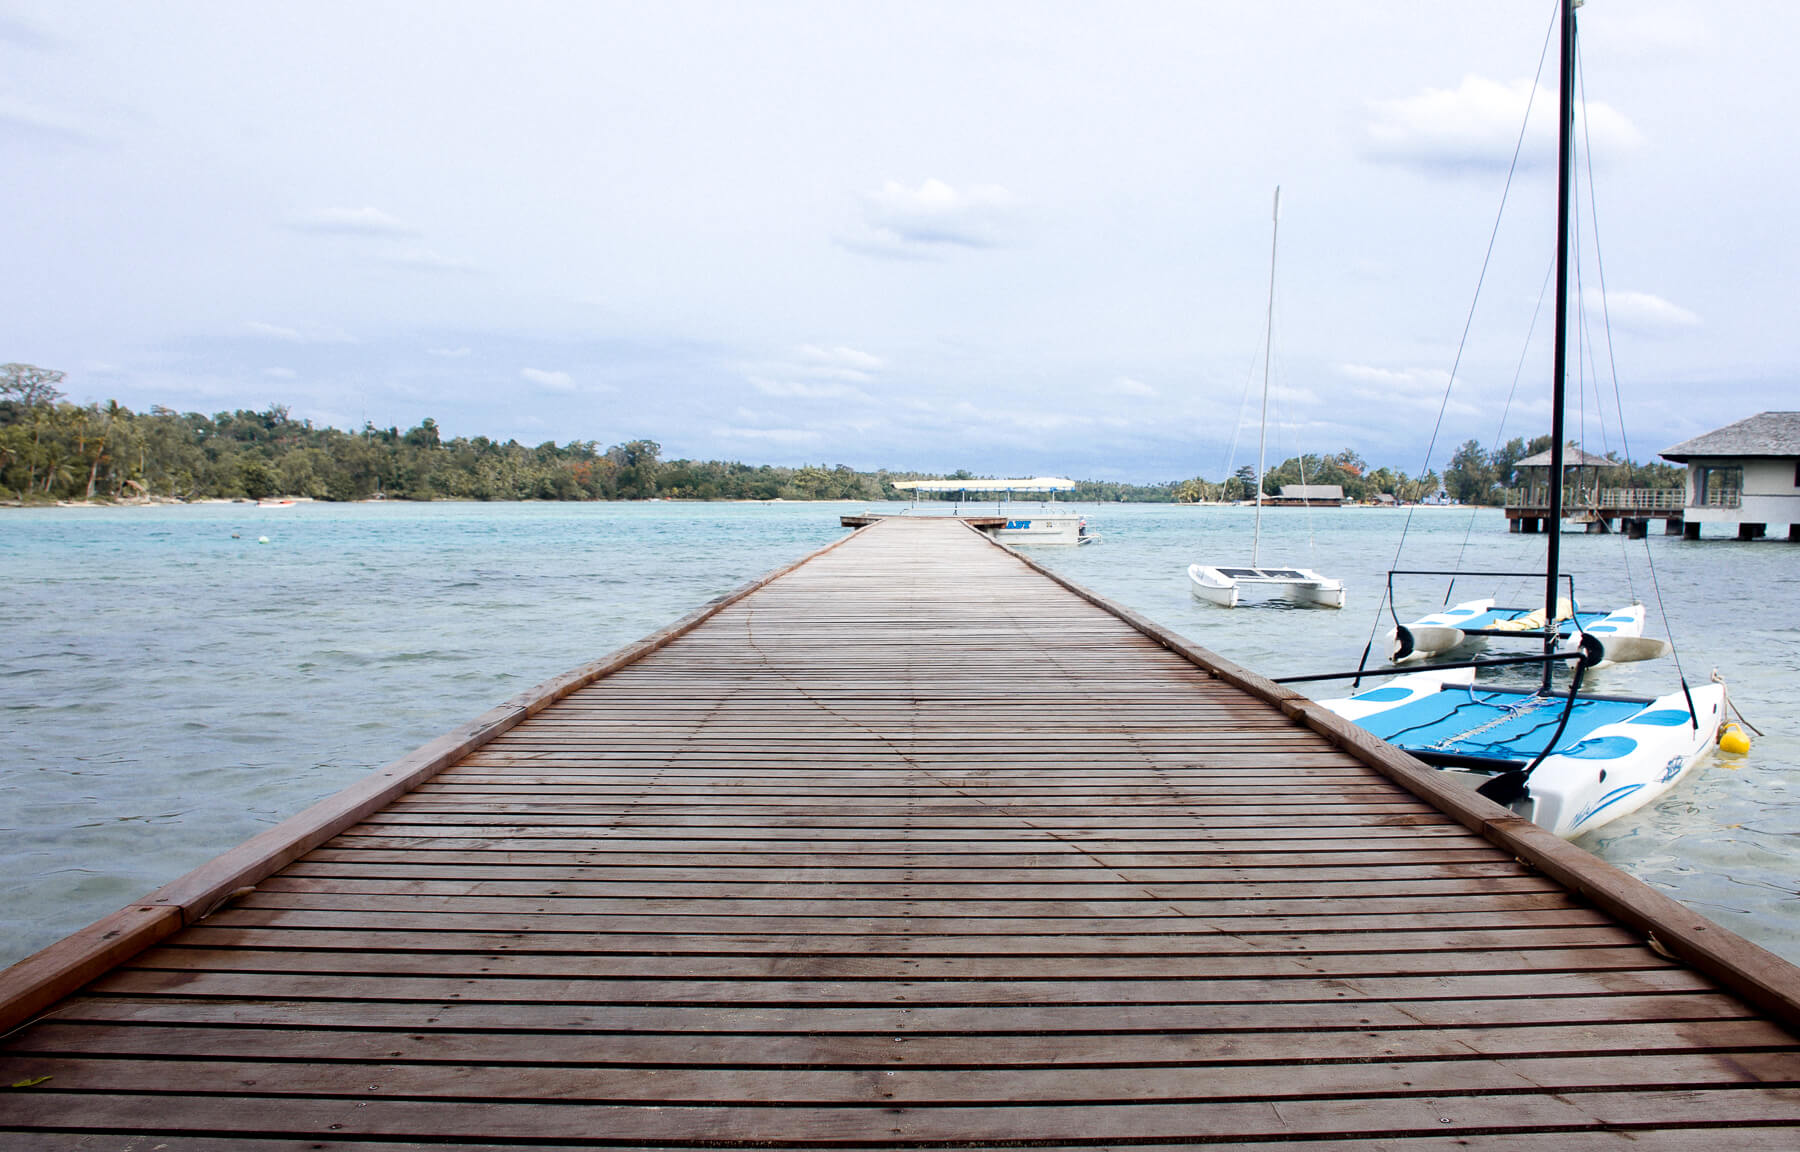 Looking down a pier on the lagoon with boats surrounding it